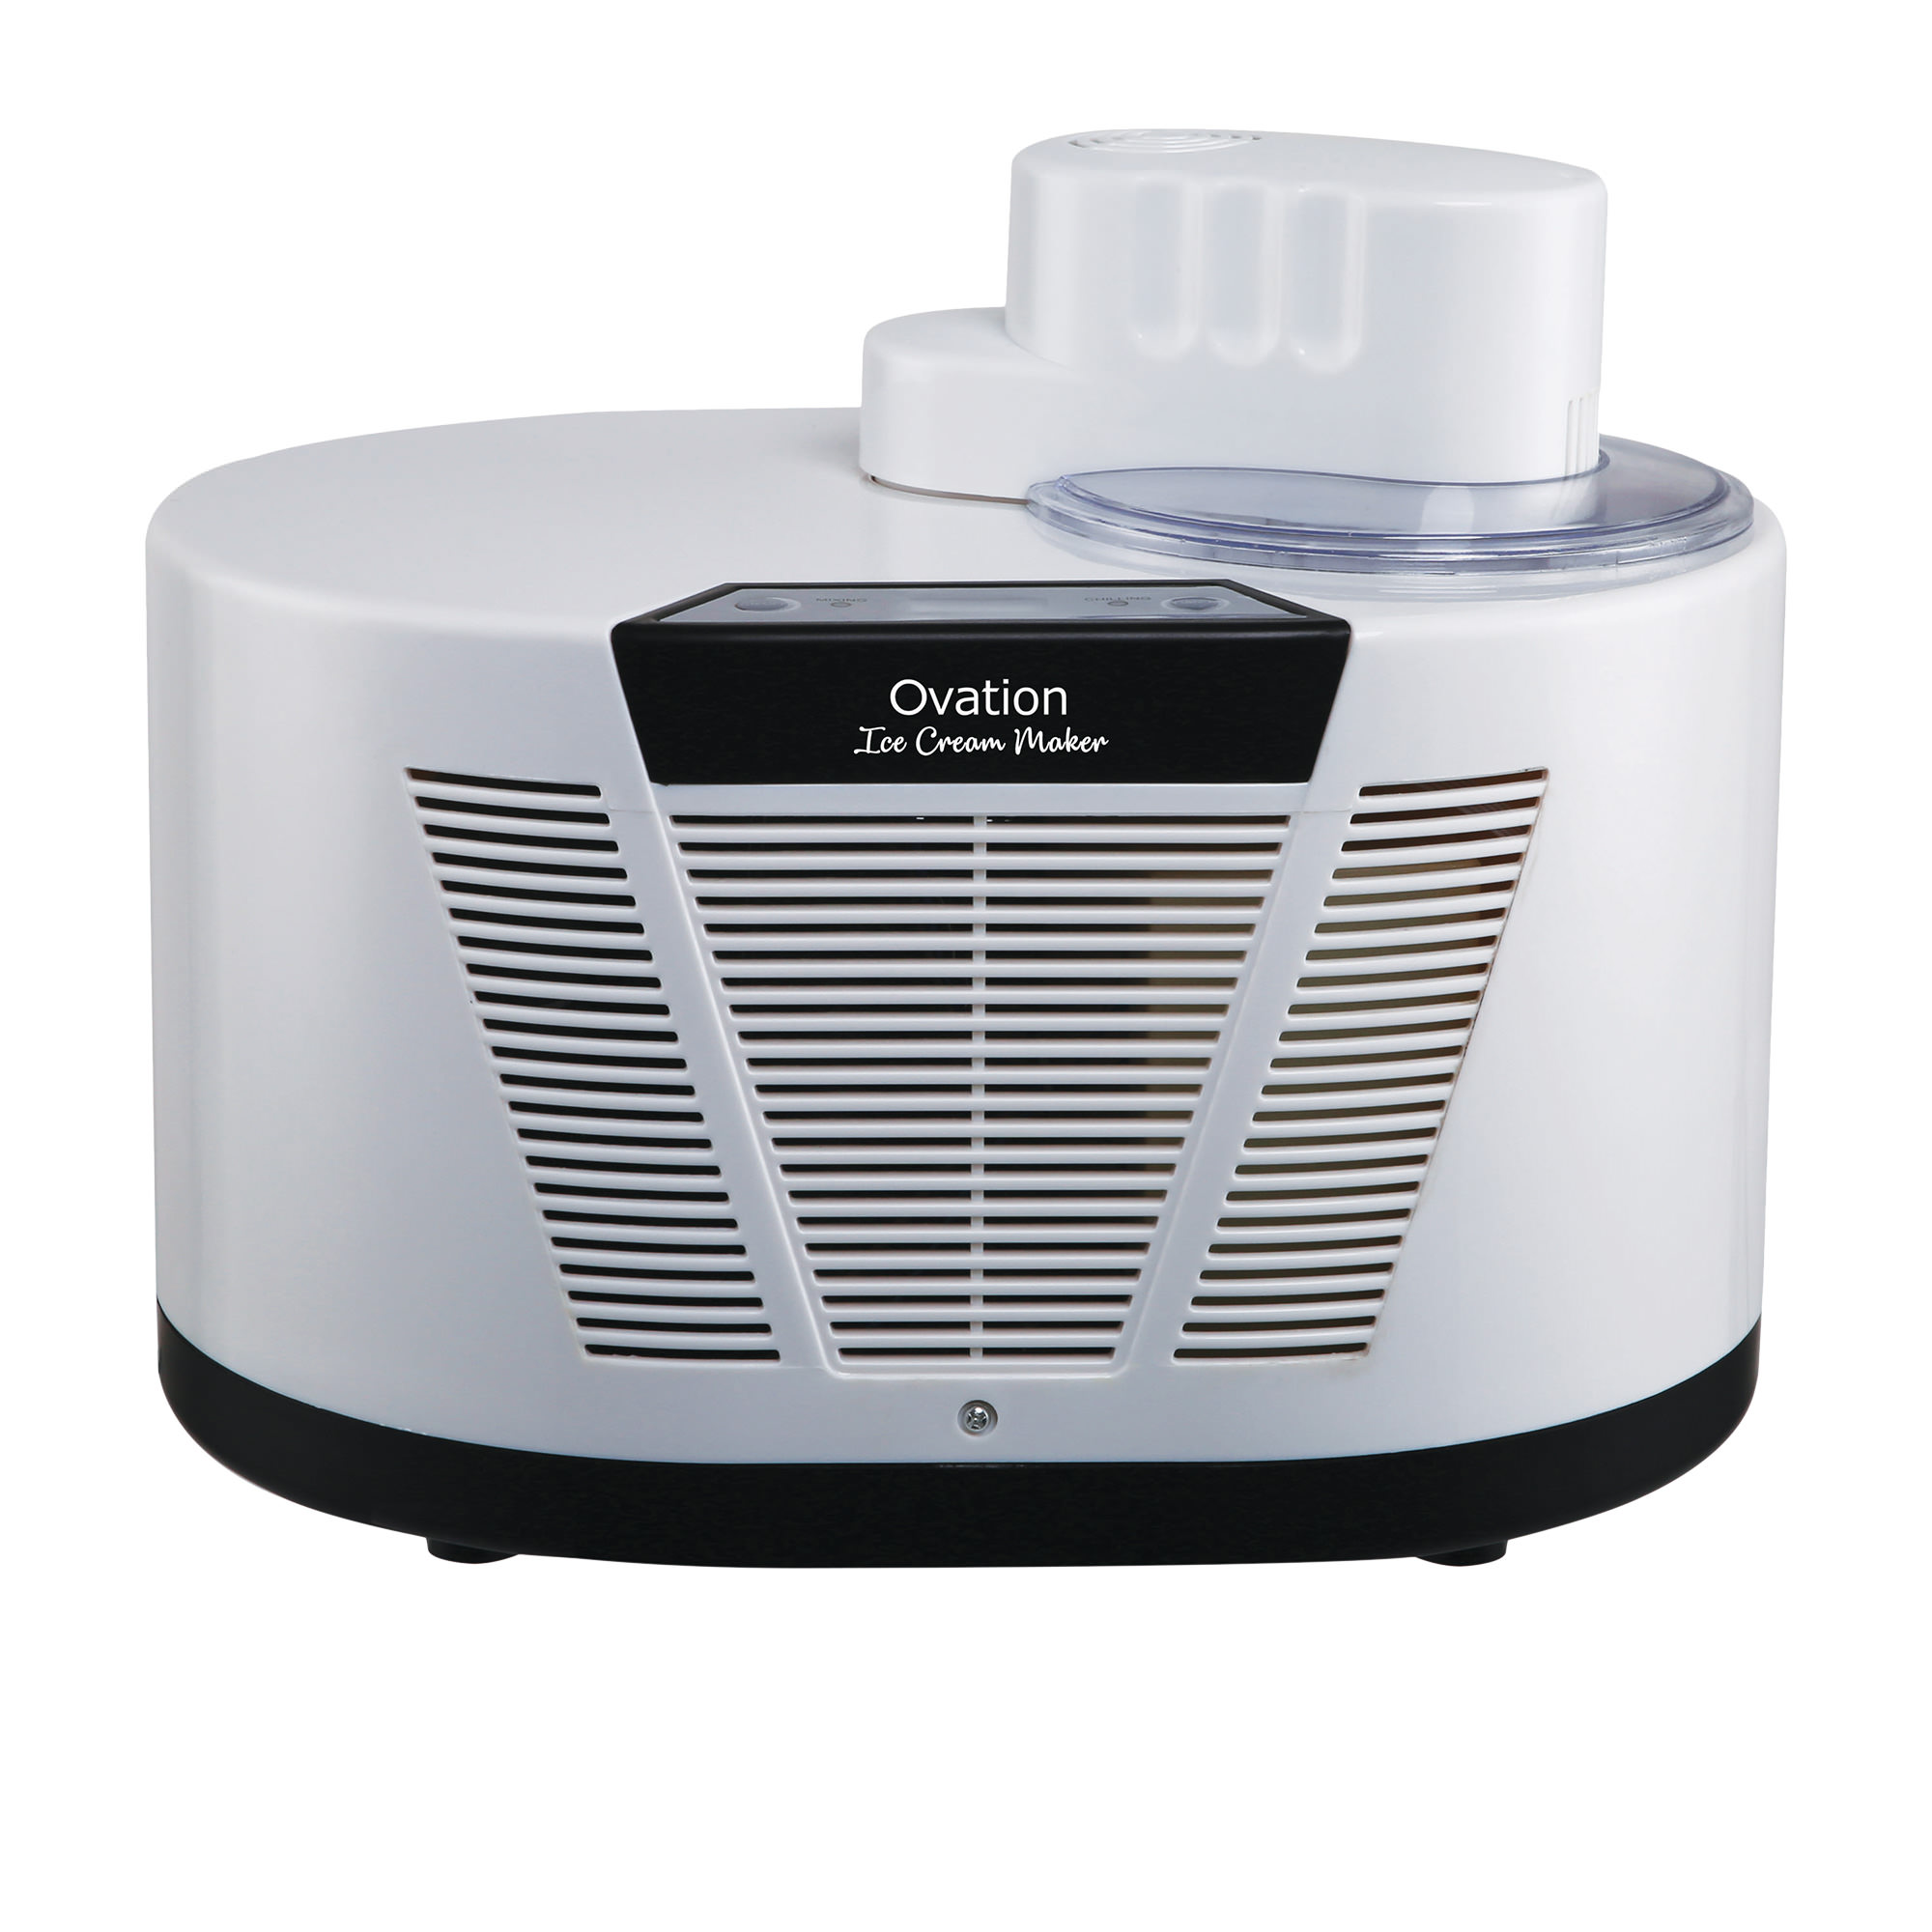 Ovation Compressor Ice Cream Maker 1L White